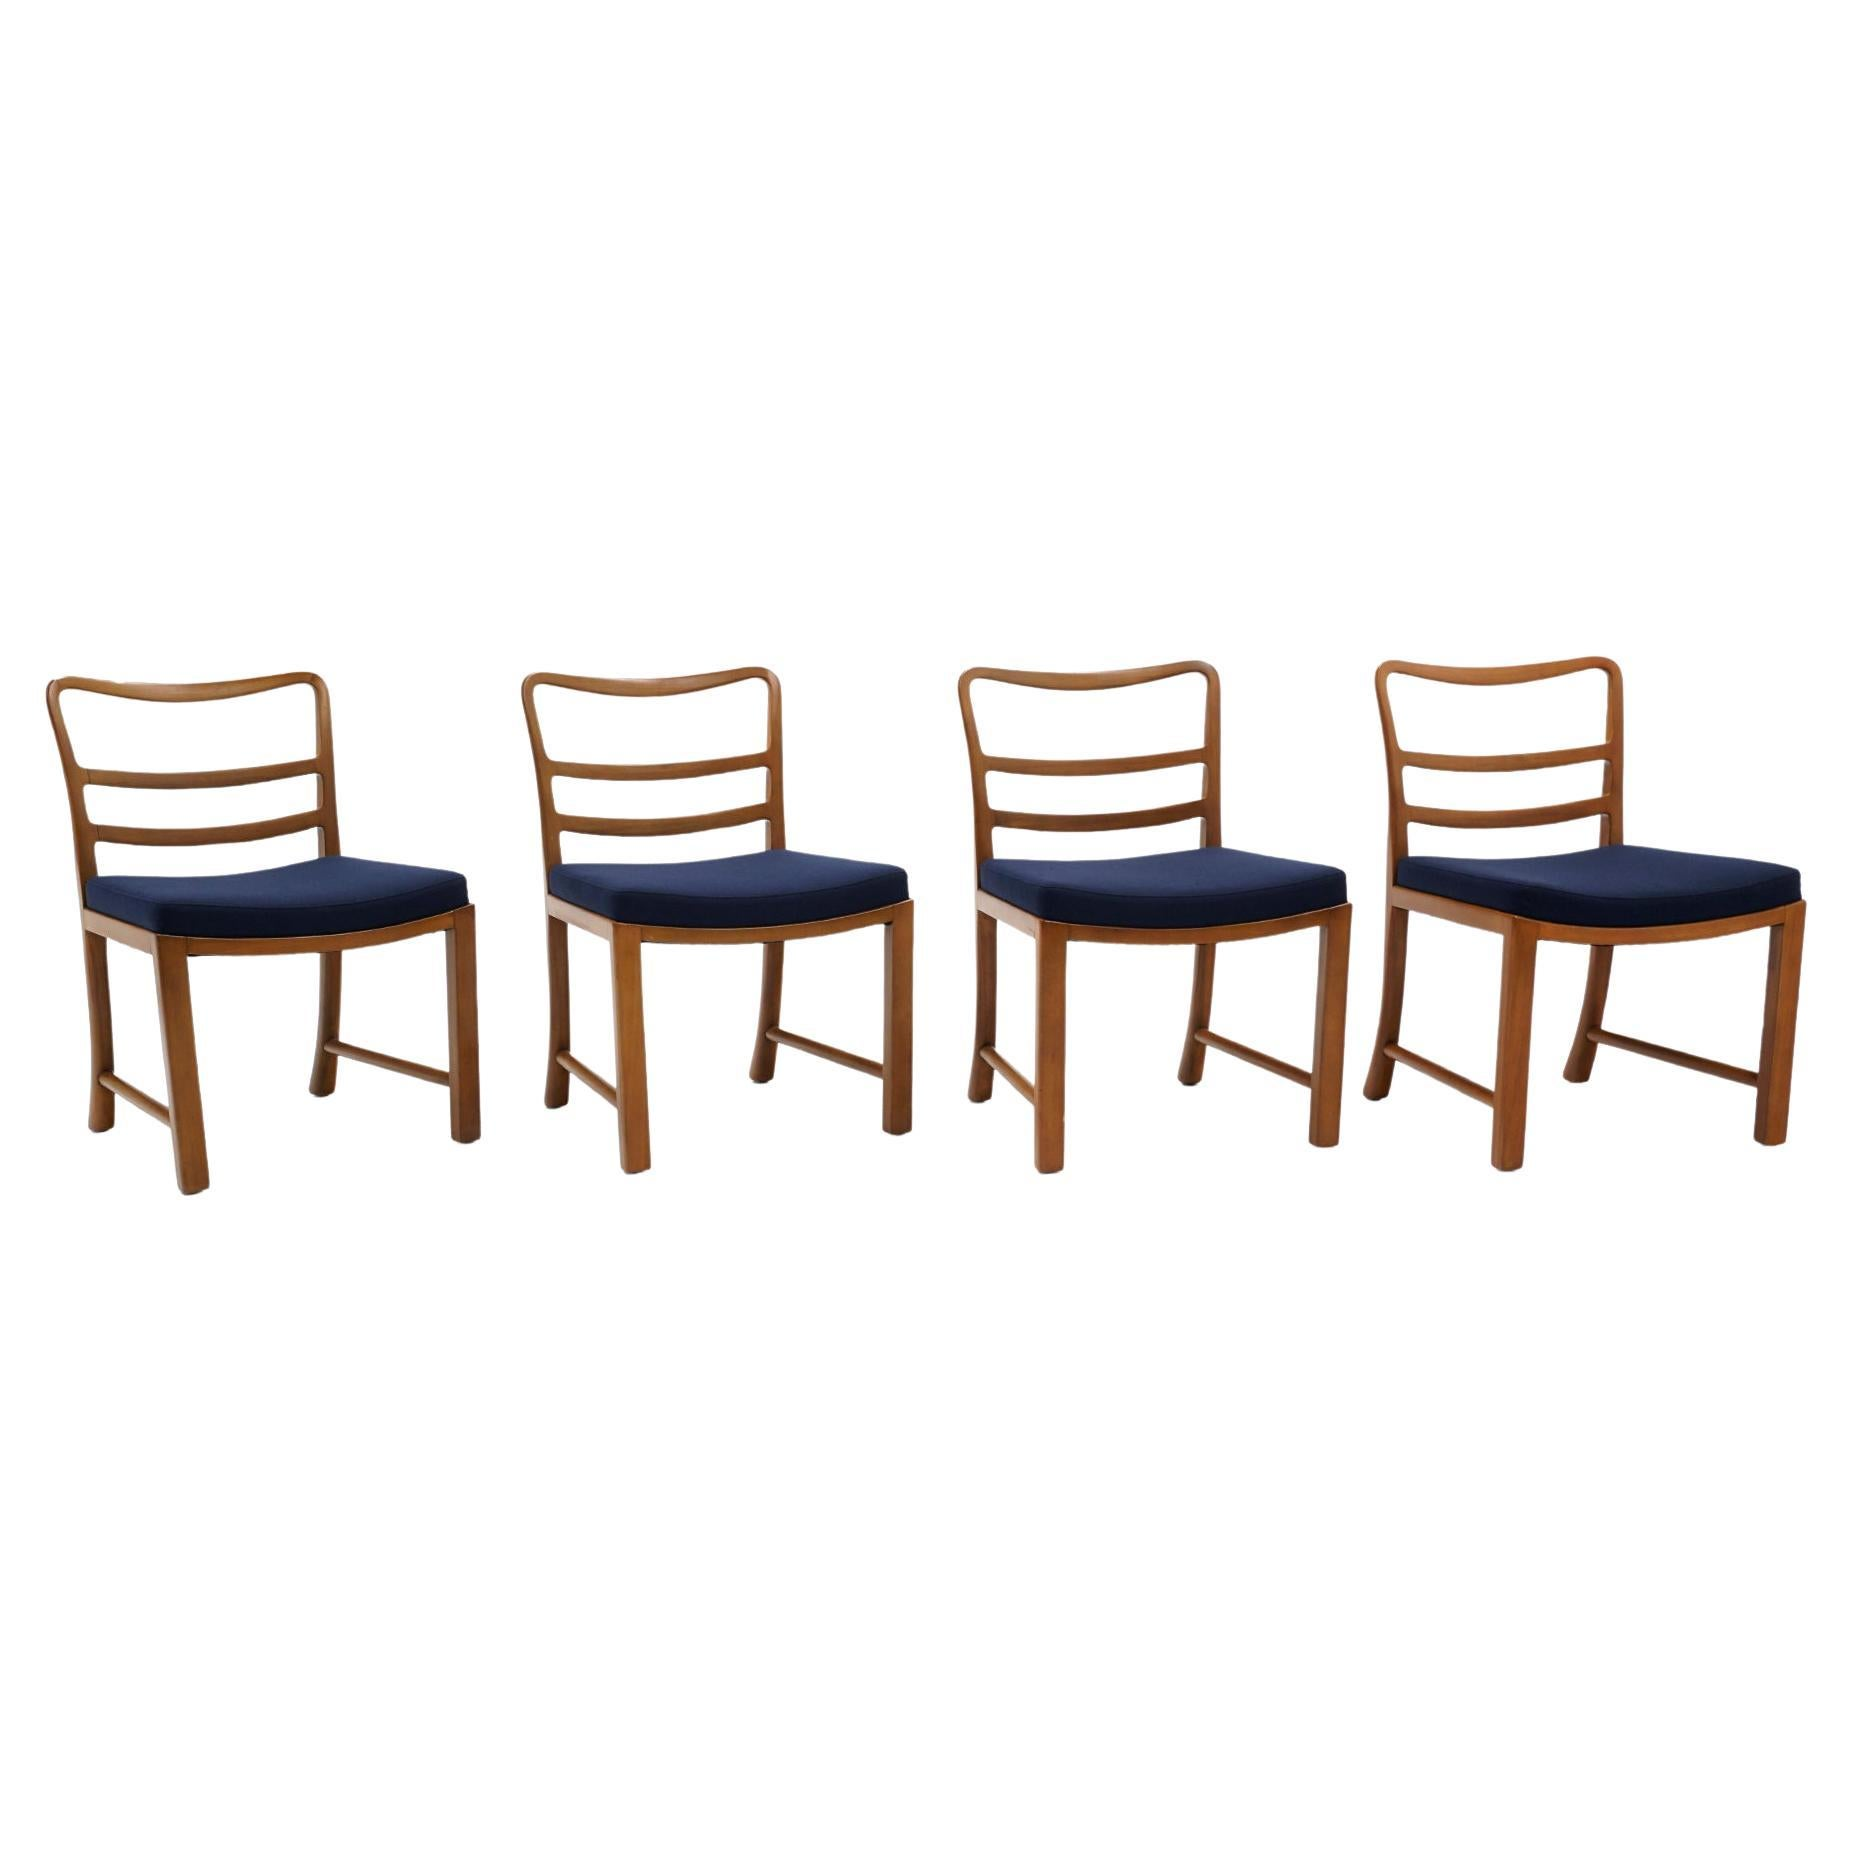 Four Dining Chairs by Edward Wormley for Dunbar